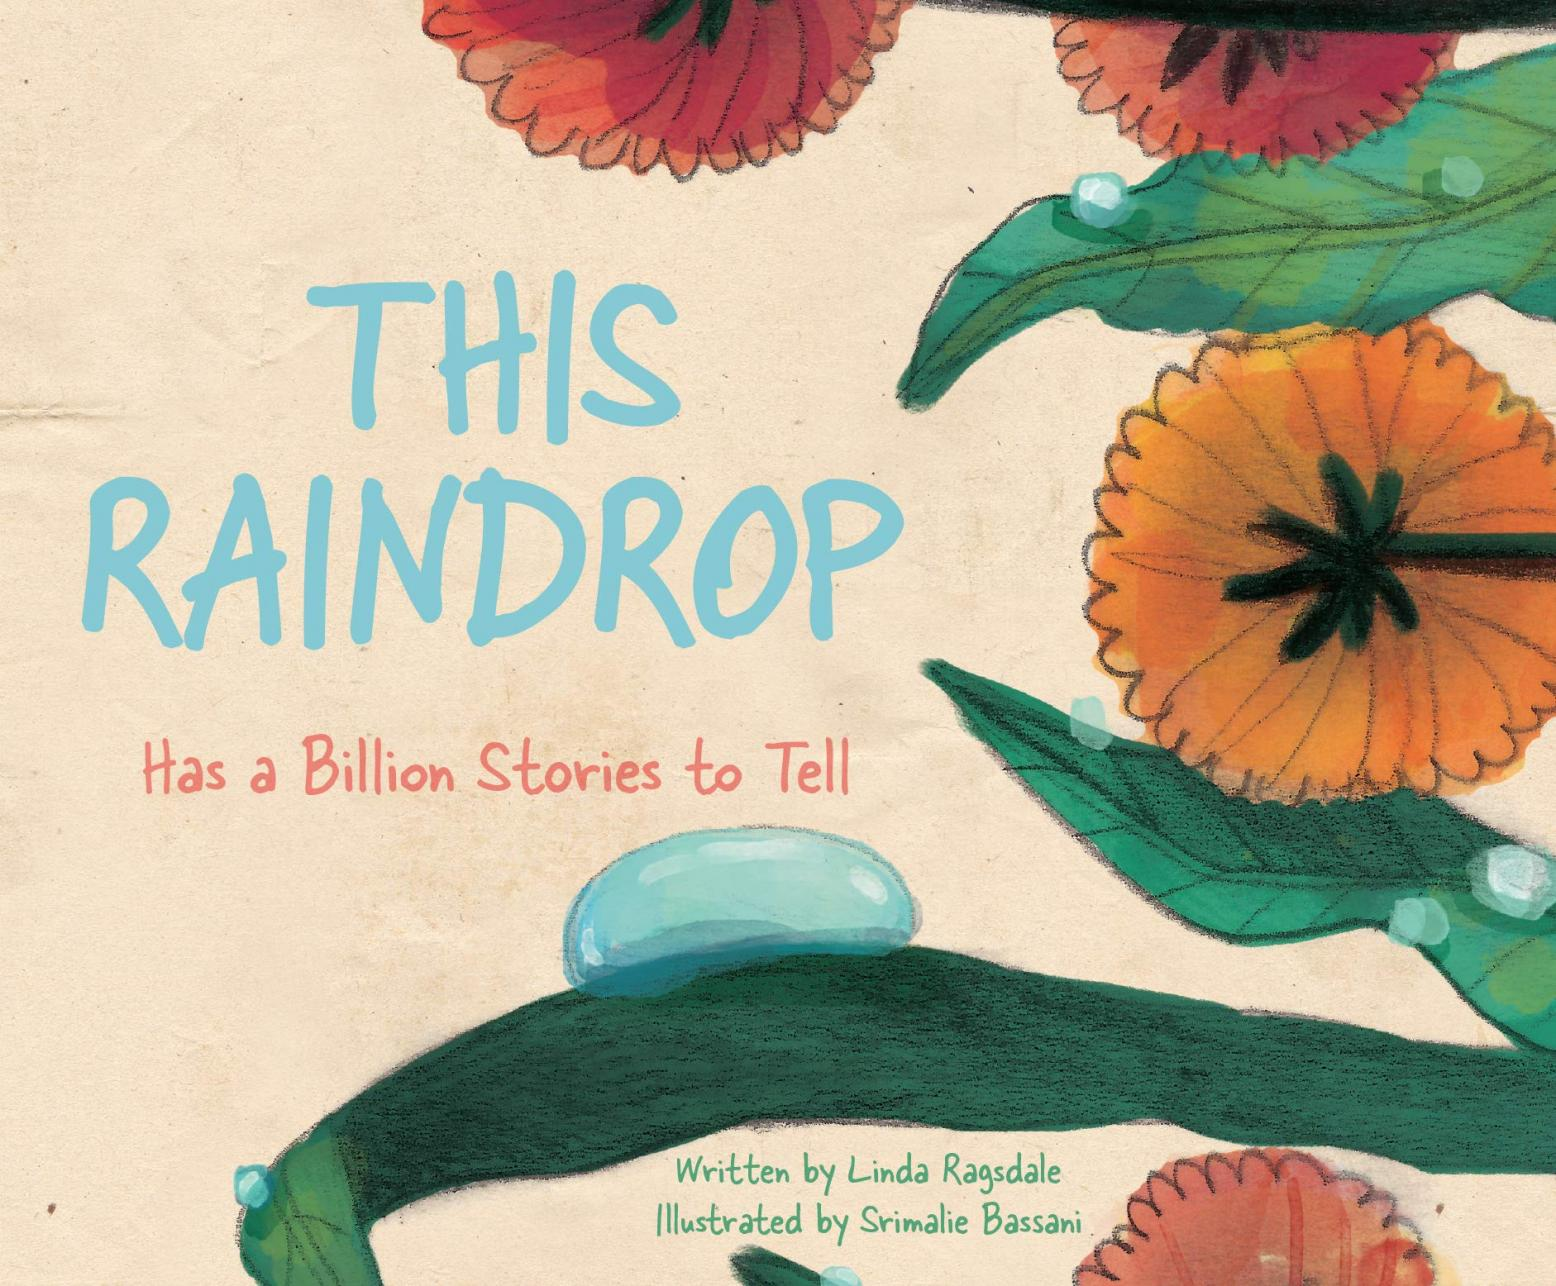 This raindrop has a billion stories to tell